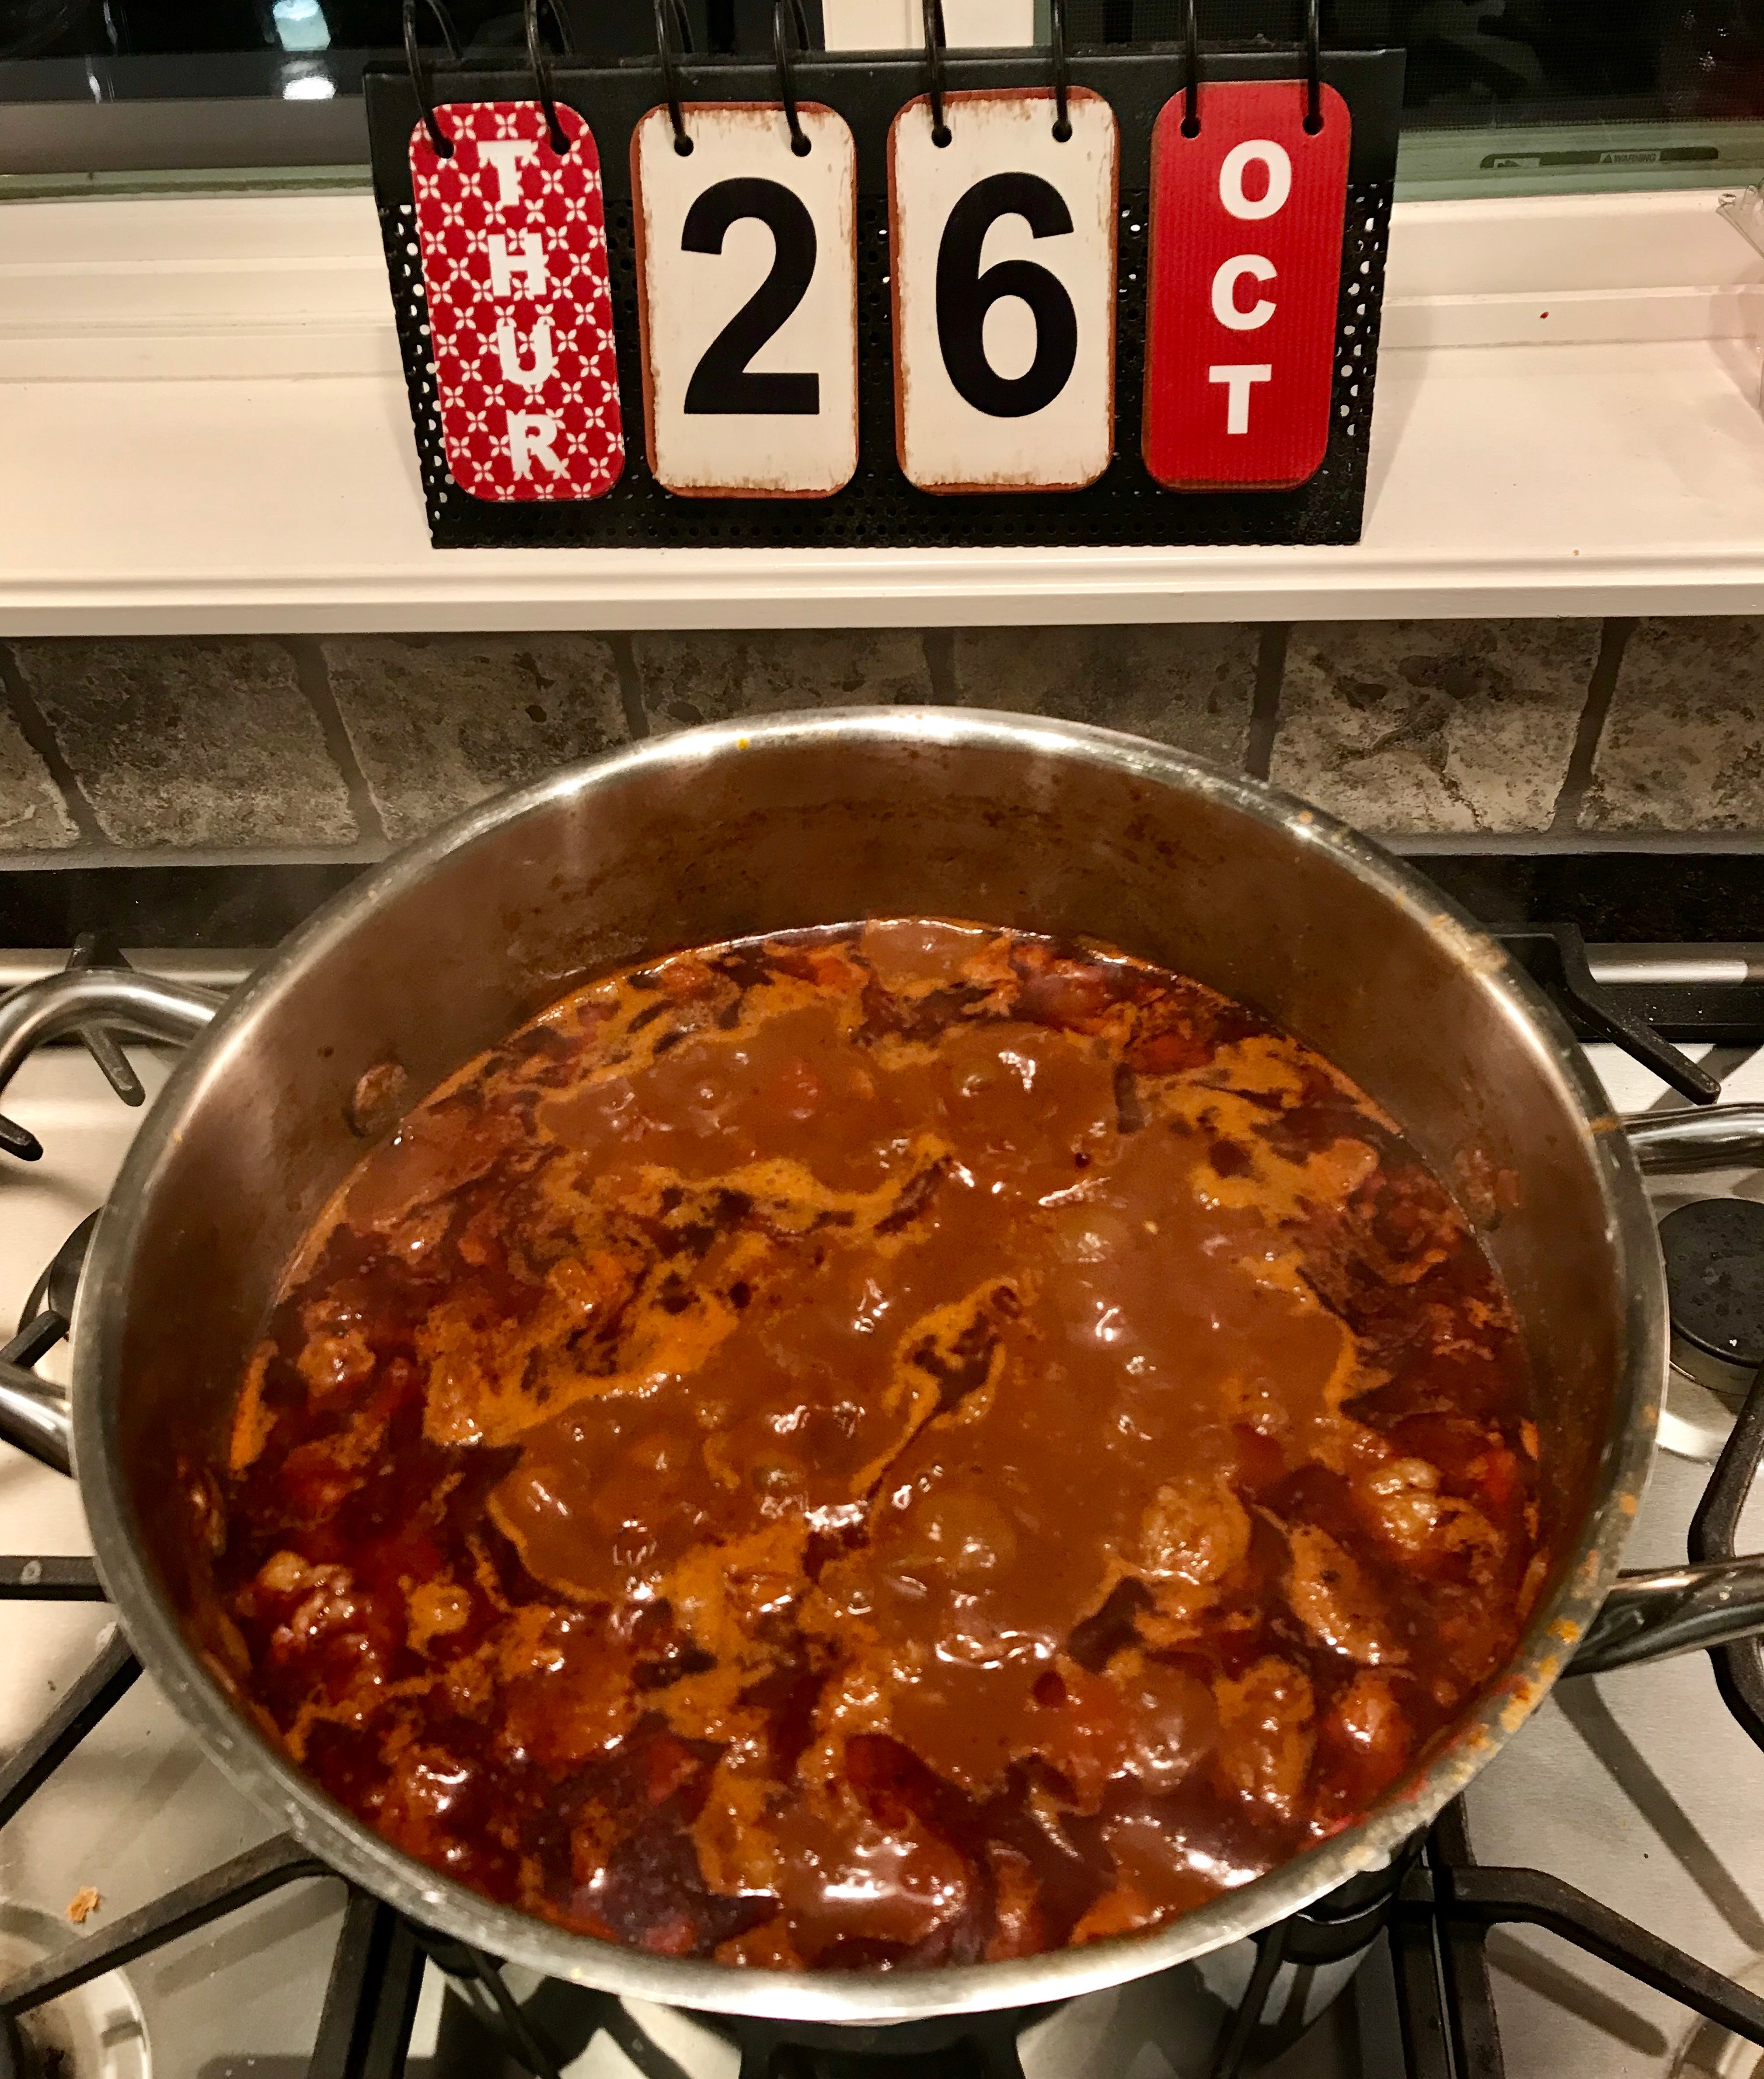 Cooking Chili - Keep Stirring